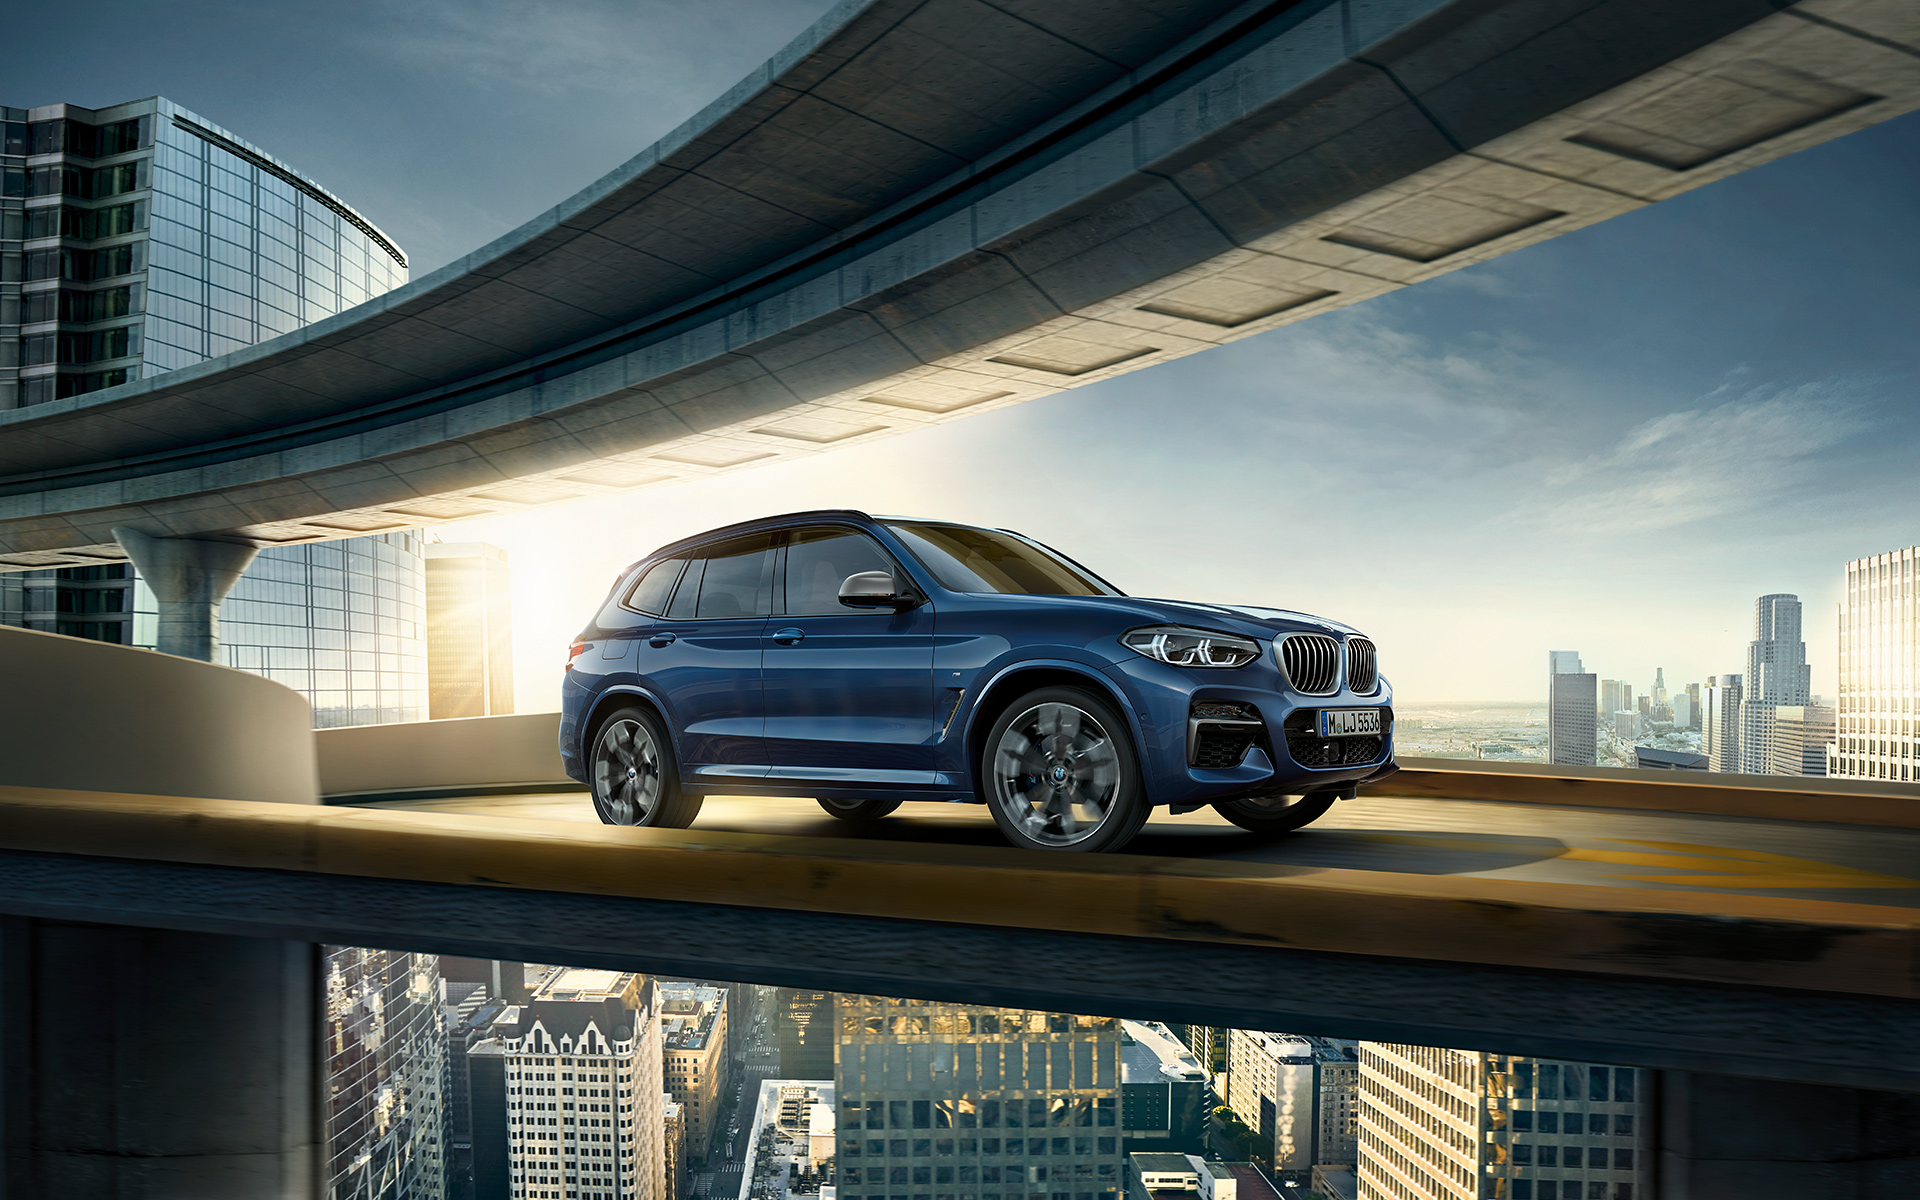 BMW X Series X3 high-performance metallic blue vehicle is driving on the futuristic city bridge.